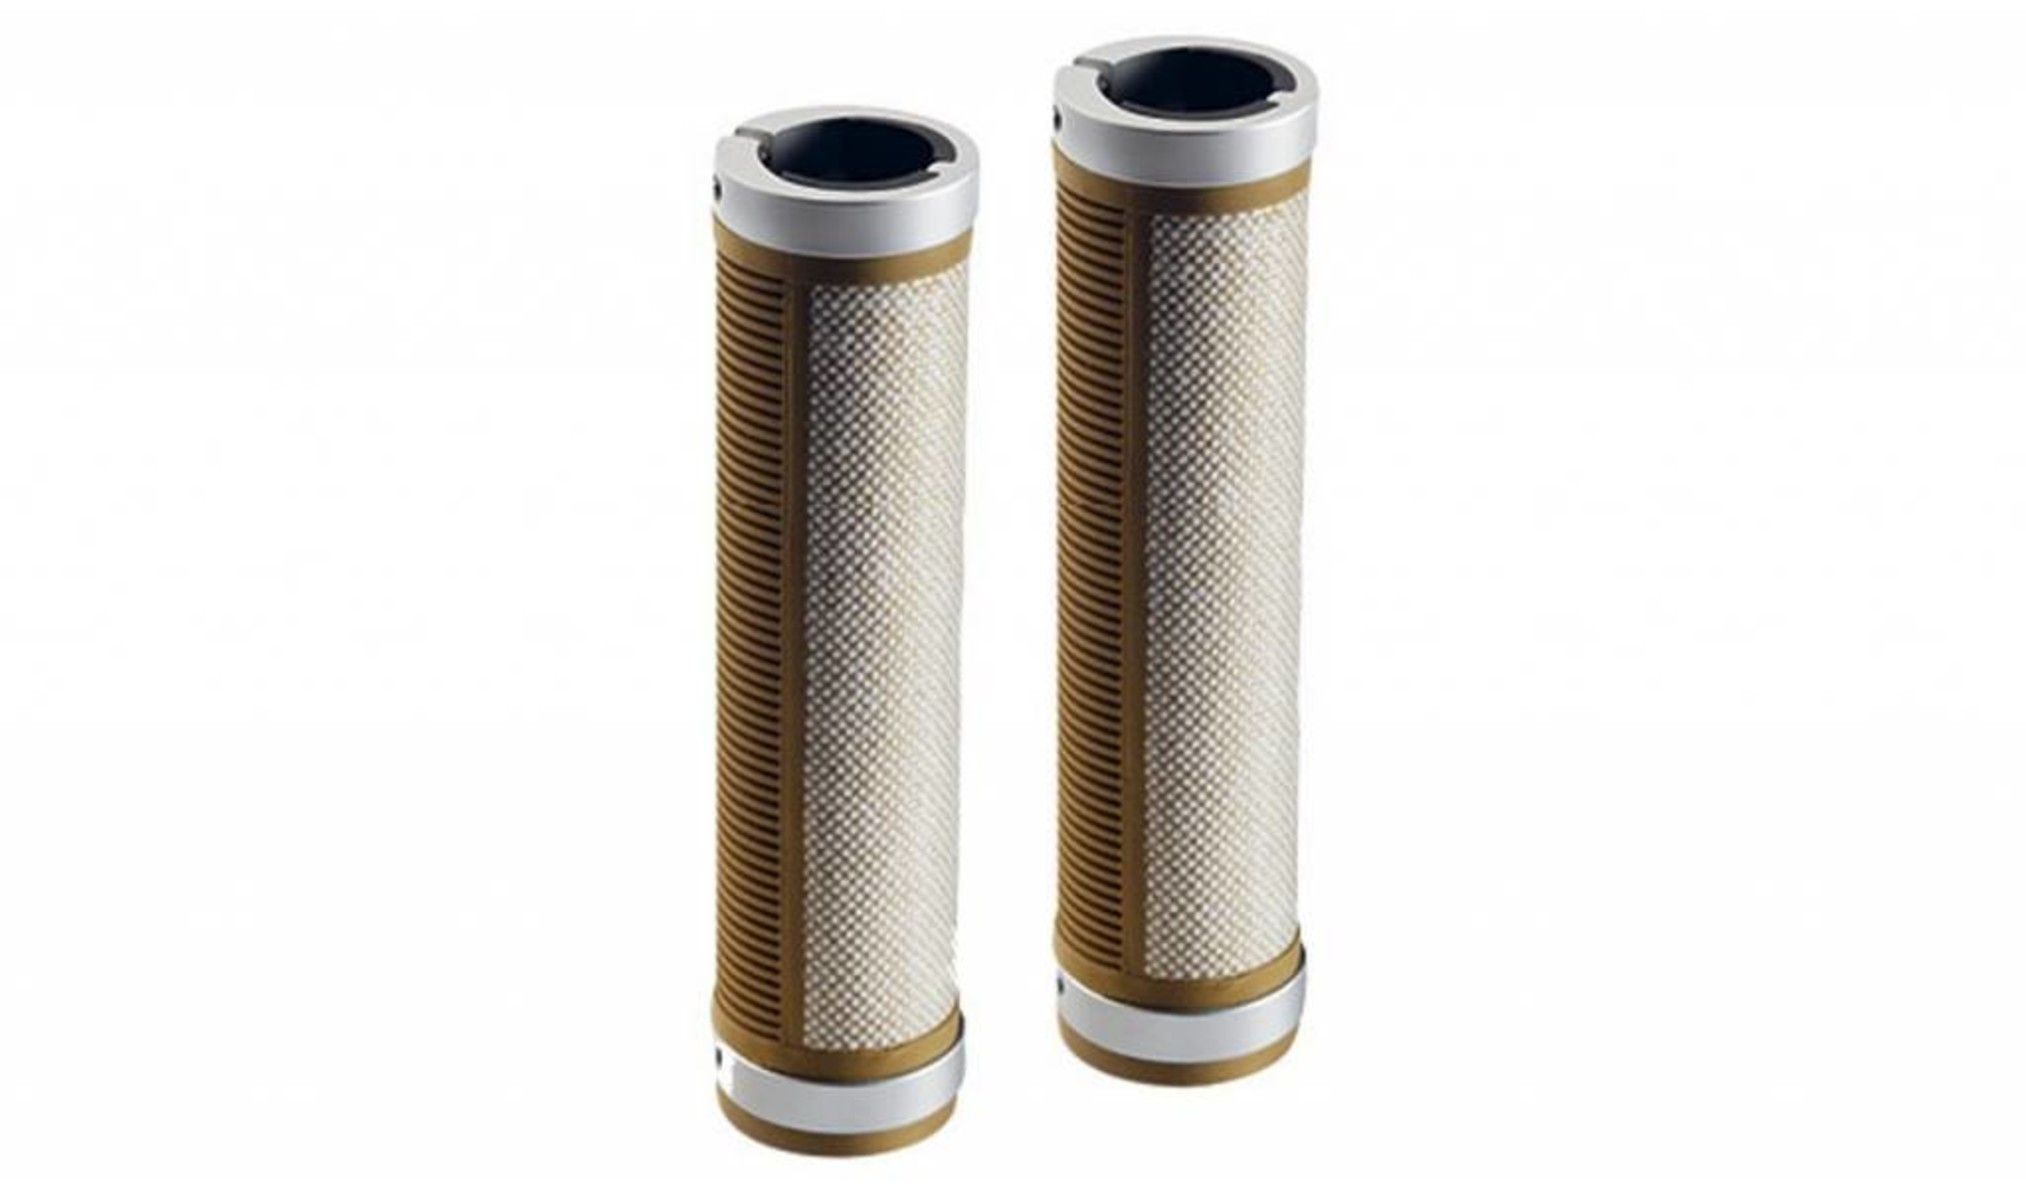 Brooks Cambium Natural grips